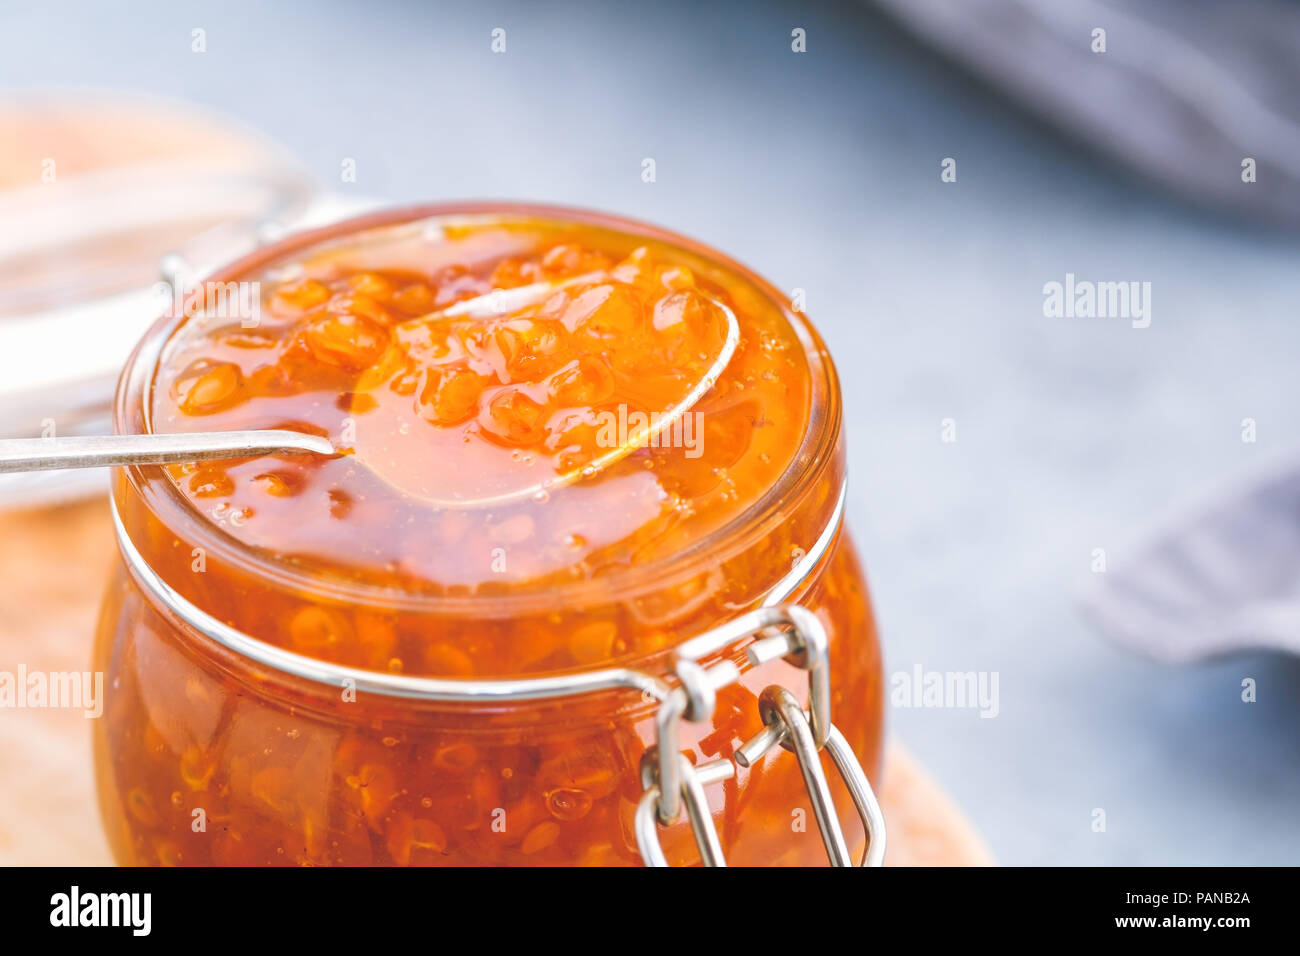 Glass jar with cloudberry jam. Nordic cuisine. Stock Photo